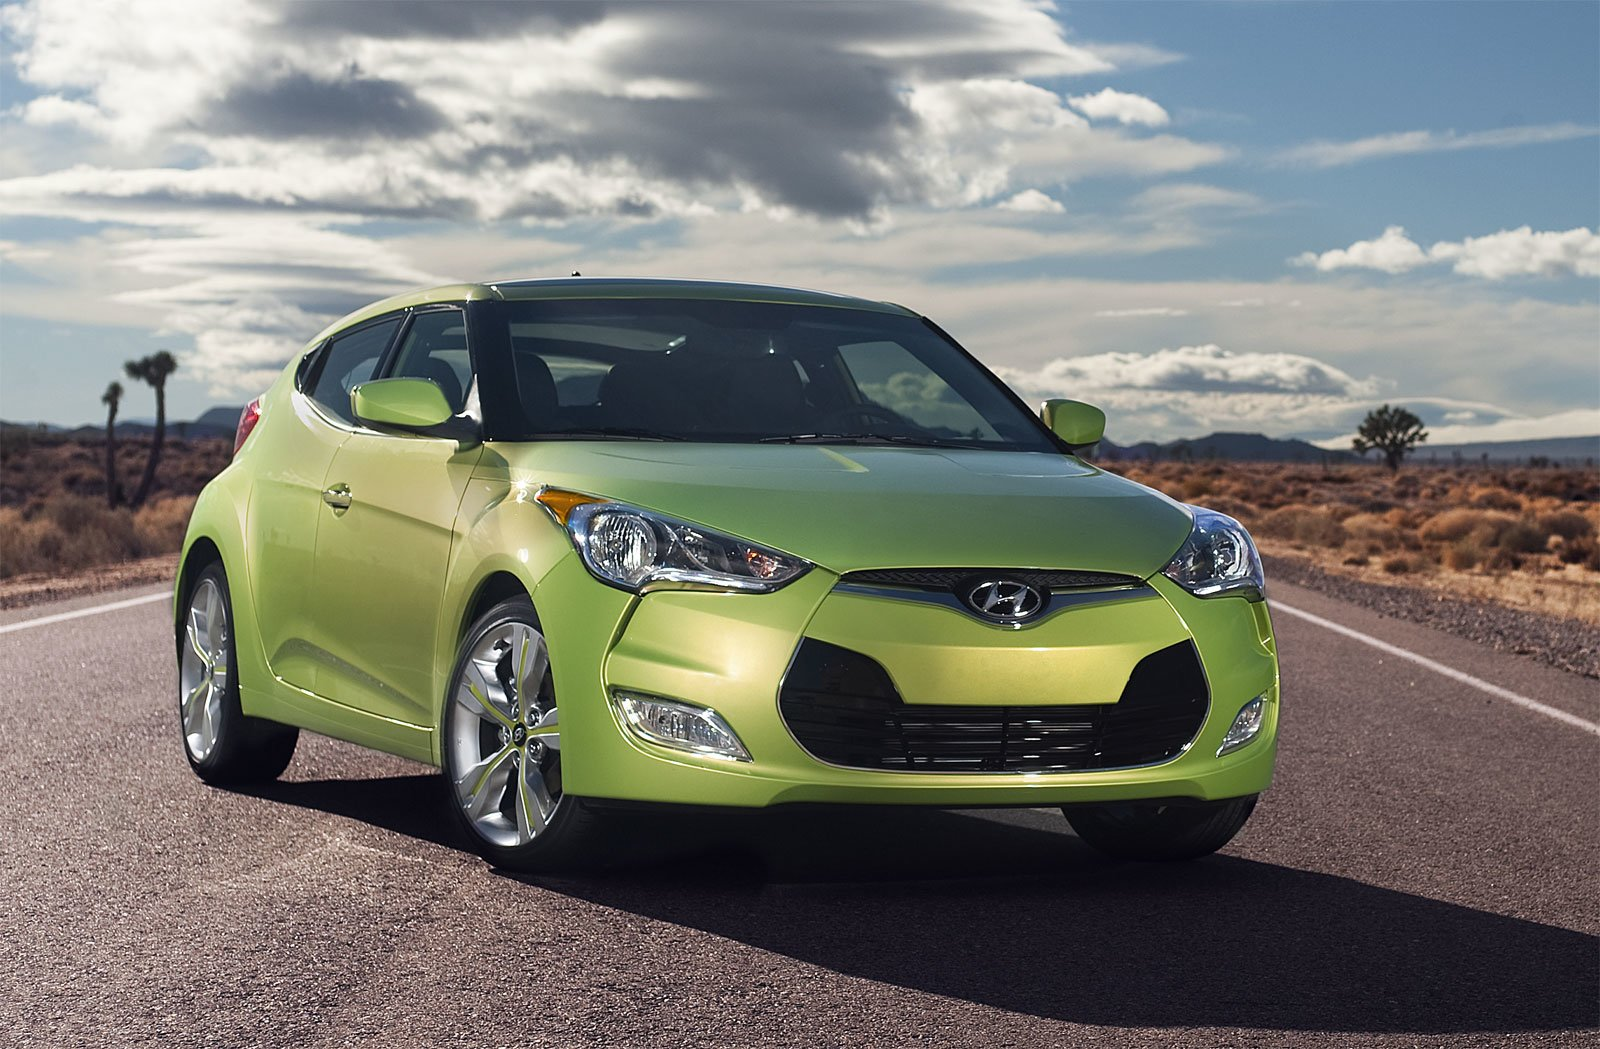 New Sport Cars Hyundai Veloster Hd Wallpapers 2012 On This Month